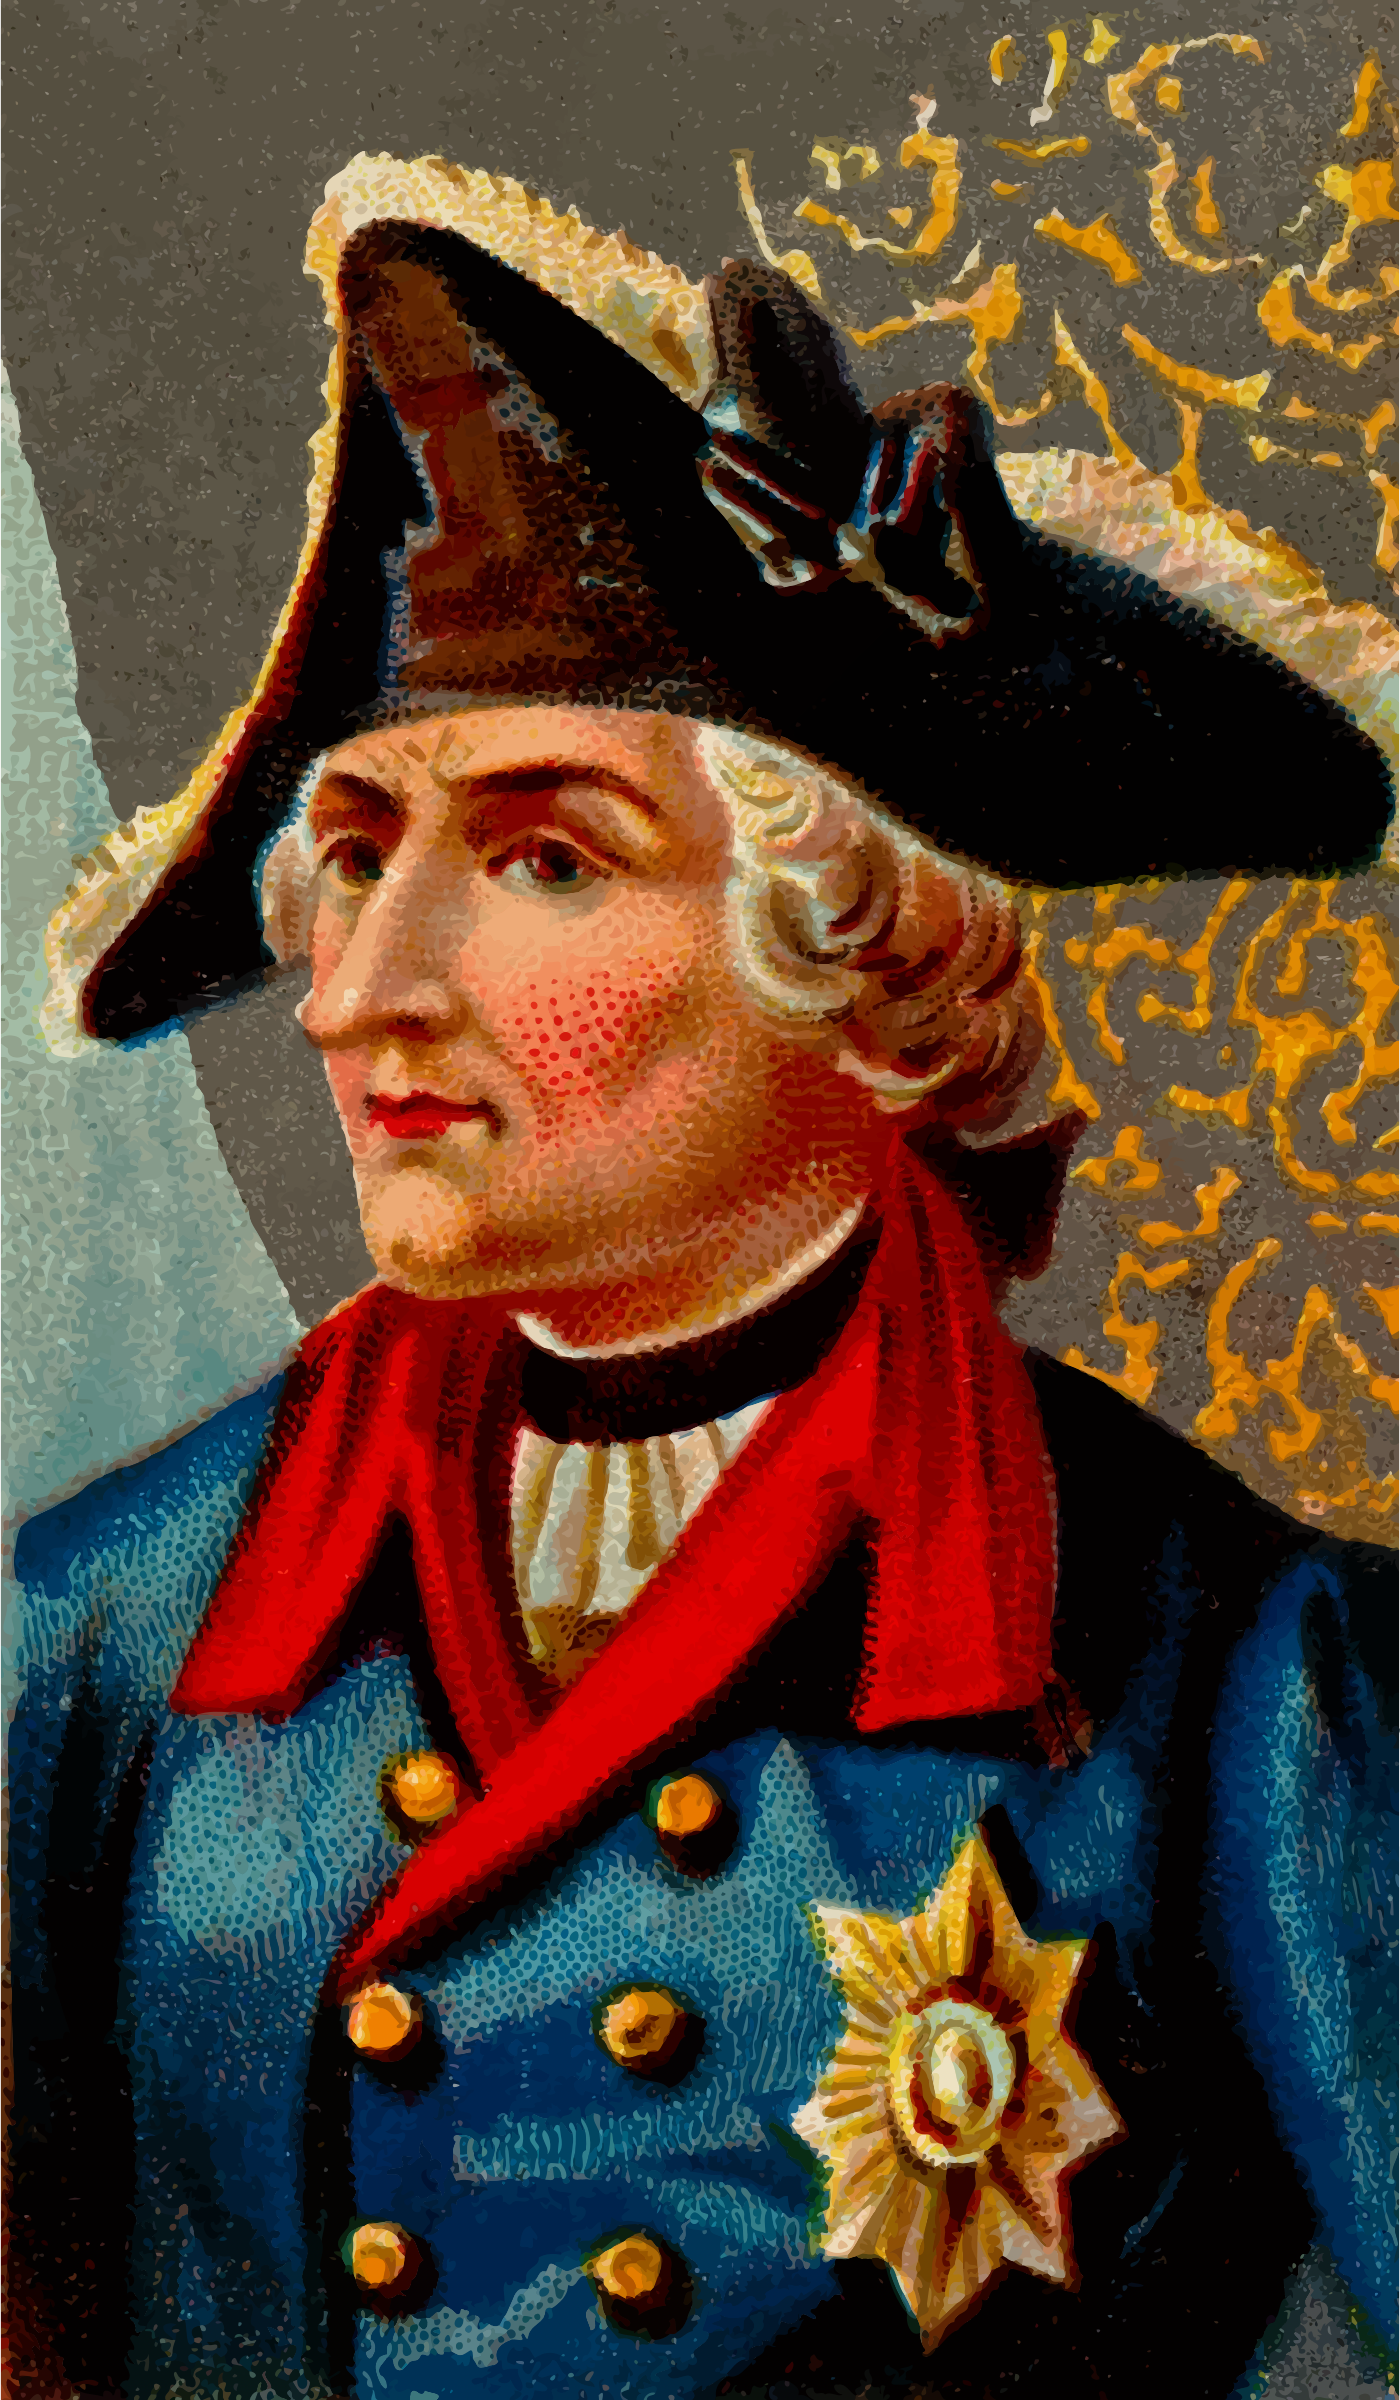 Cigarette card - Frederick the Great by Firkin